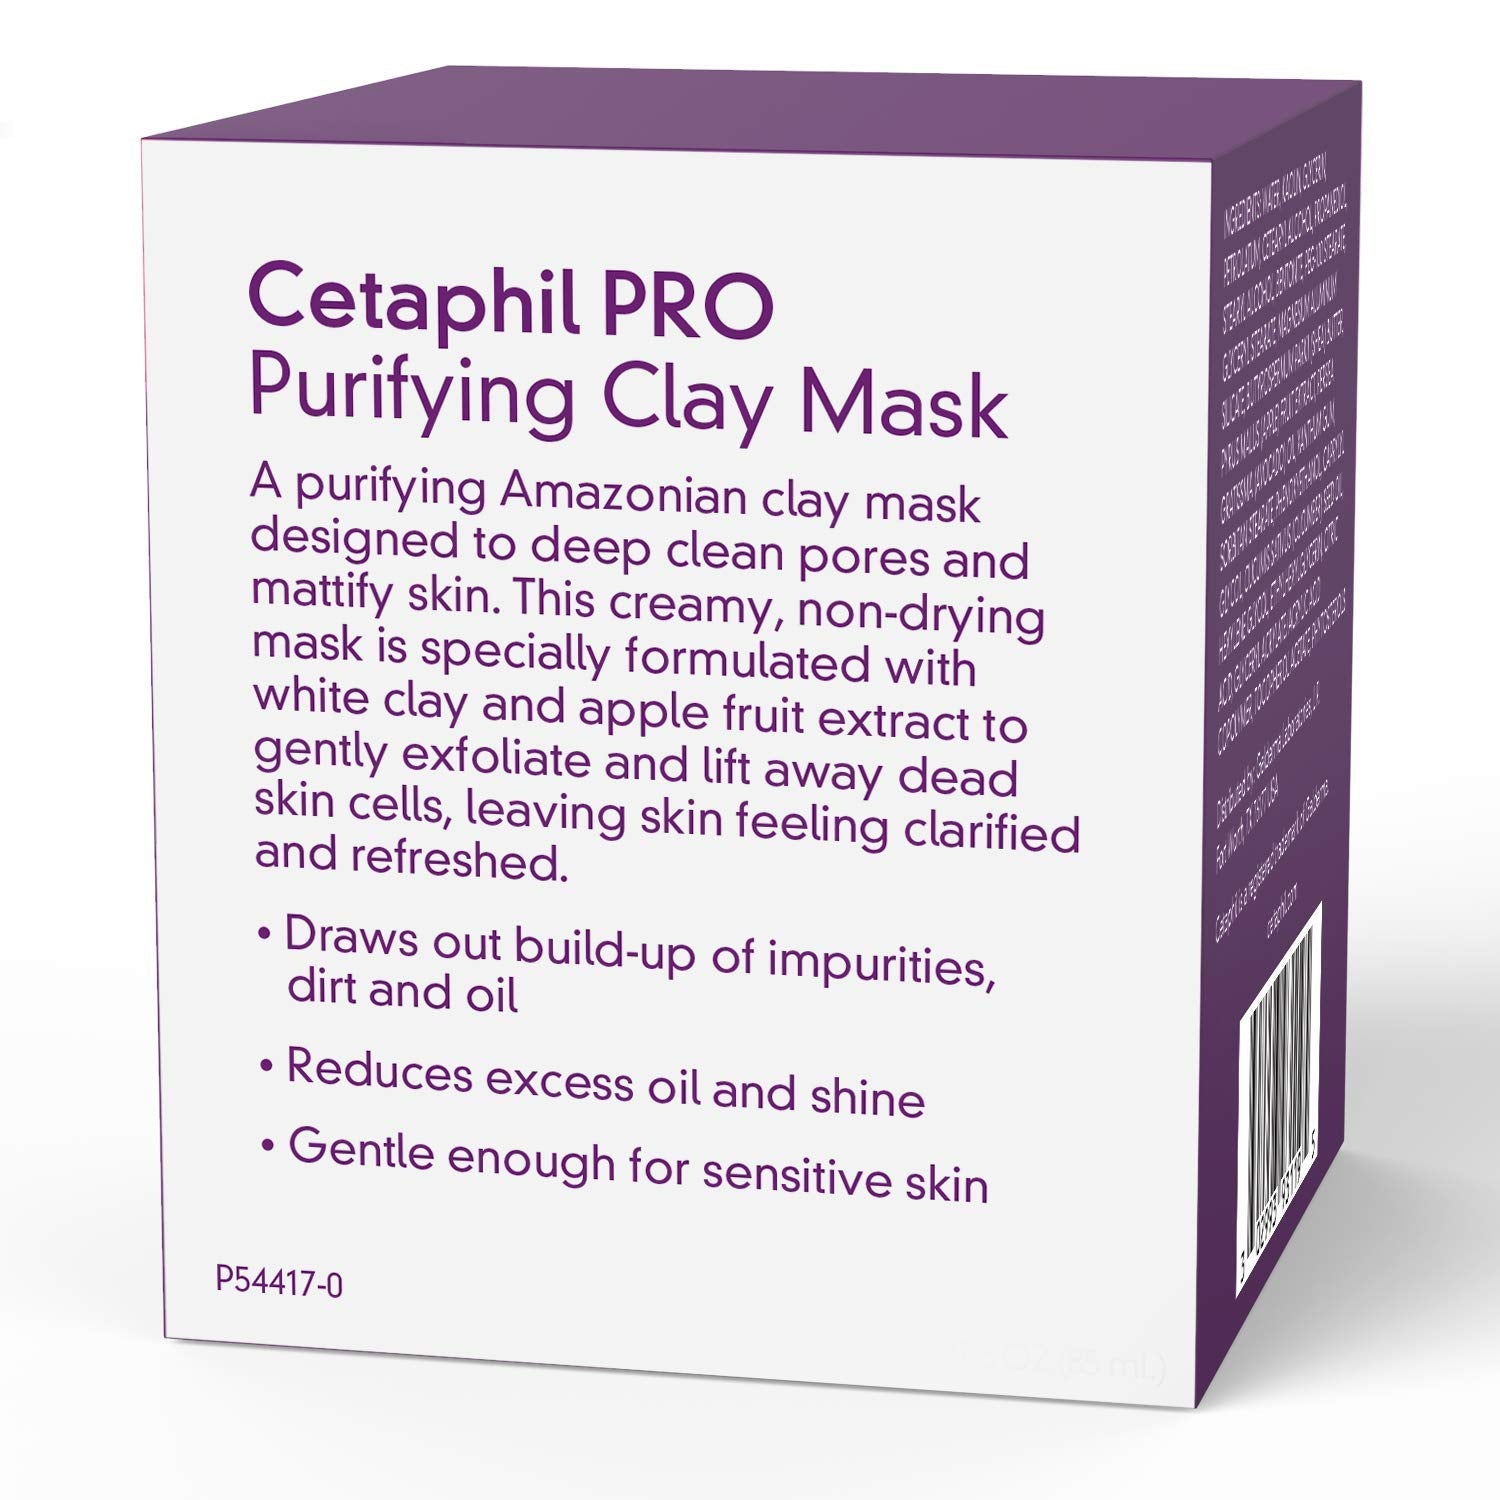 Pro Dermacontrol Purifying Clay Mask With bentonite Clay for Oily, Sensitive Skin, 3 Oz